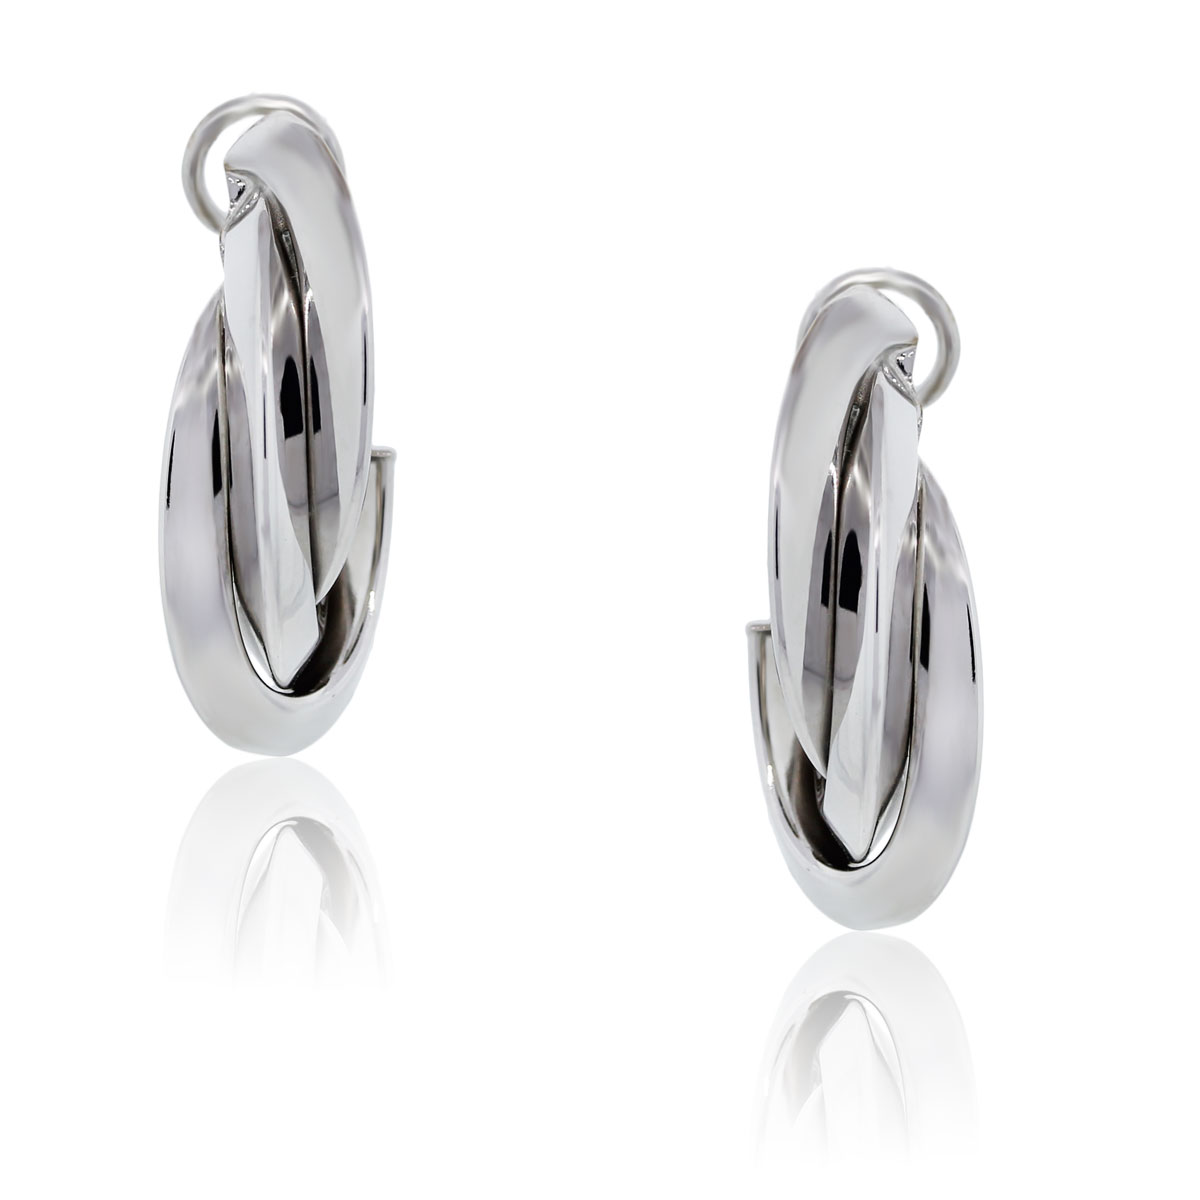 You are viewing these 18K White Gold Huggie Earrings!